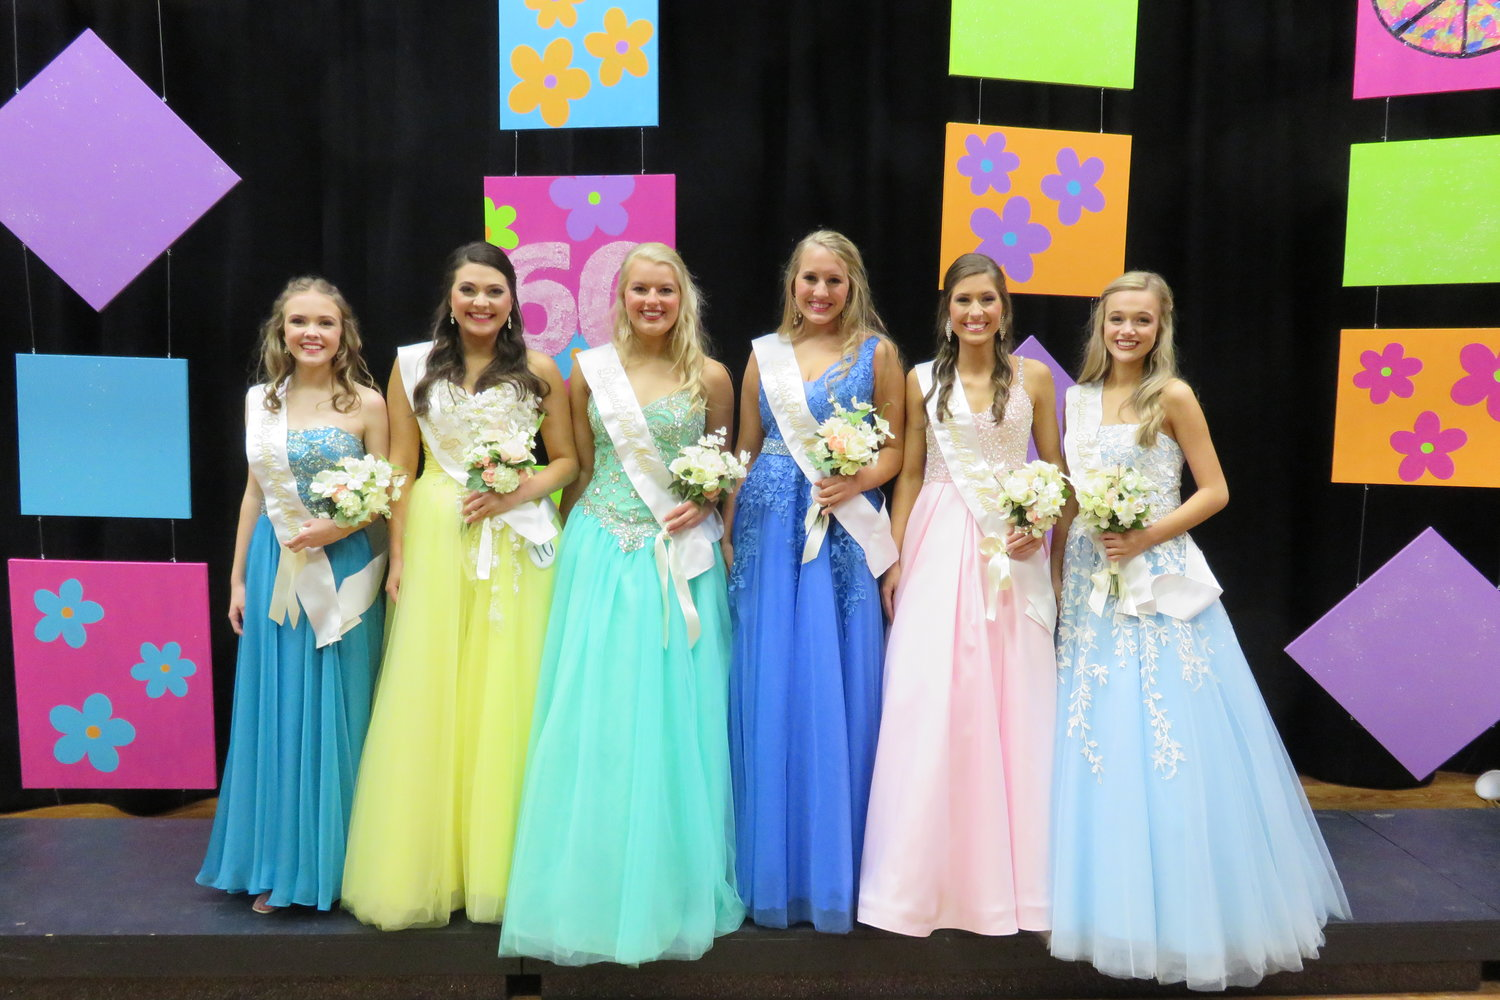 2020 Doogwood Court members are Lila-Camille Knizley, Hannah Beall, Anna Claire Kinsey, Sheridan Middleton, Molly Walding, and Hali Everette.